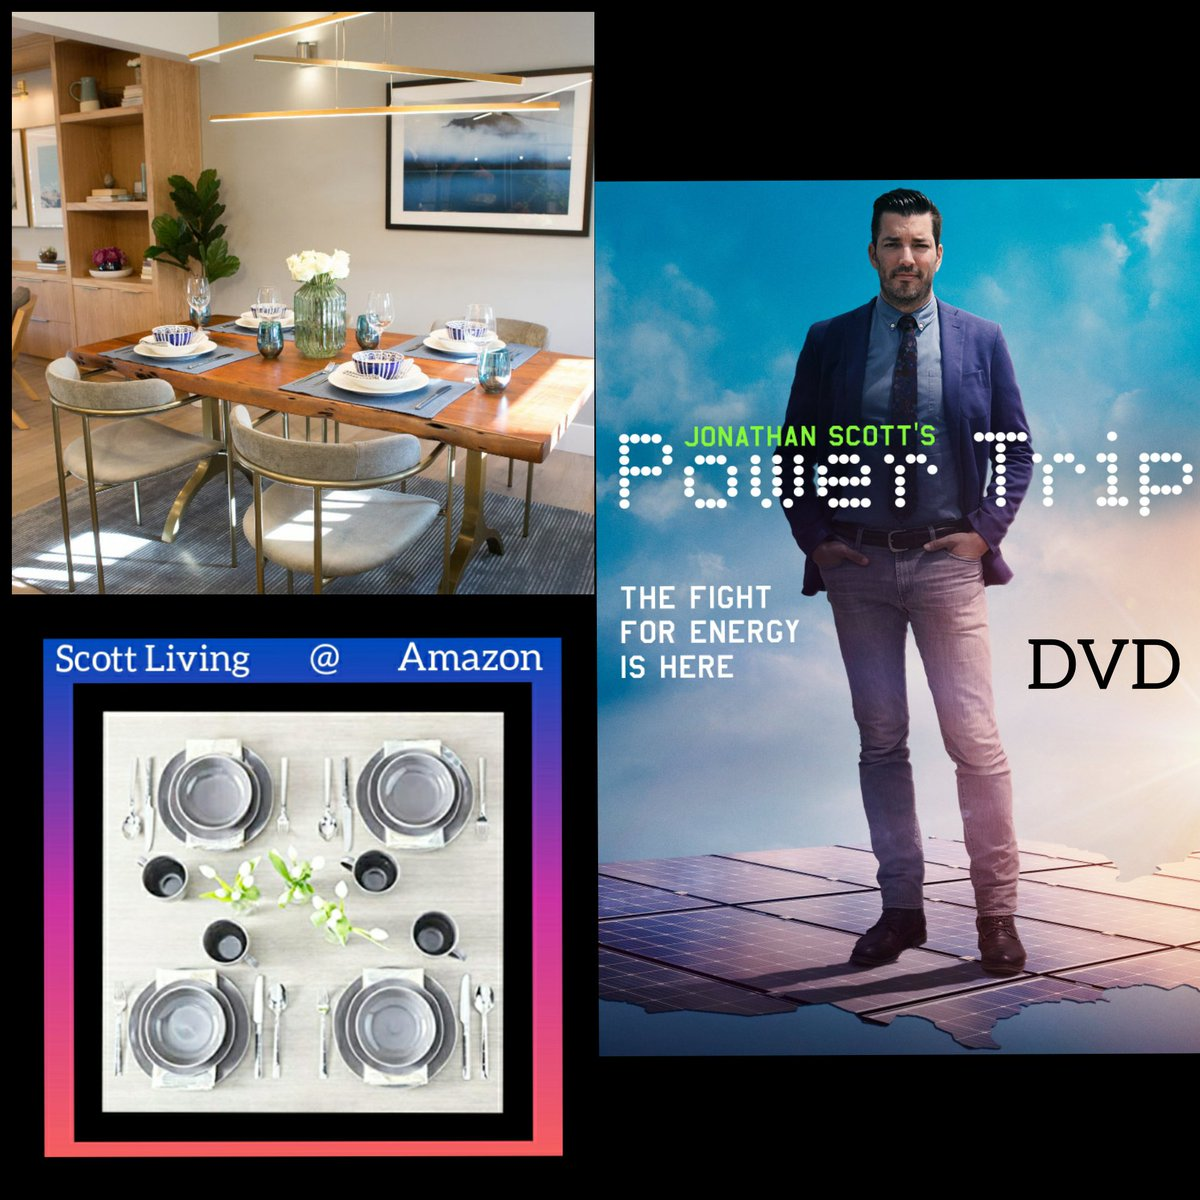 Looking for a different layout to your space? Get inspired like Nathan & Natalias episode of Property Brothers by shopping with Casaza & Scott Living while watching Jonathan Scott's new DVD #SundayMorning #sundayvibes #SundayThoughts #SundayMotivation #SundayService #Trending